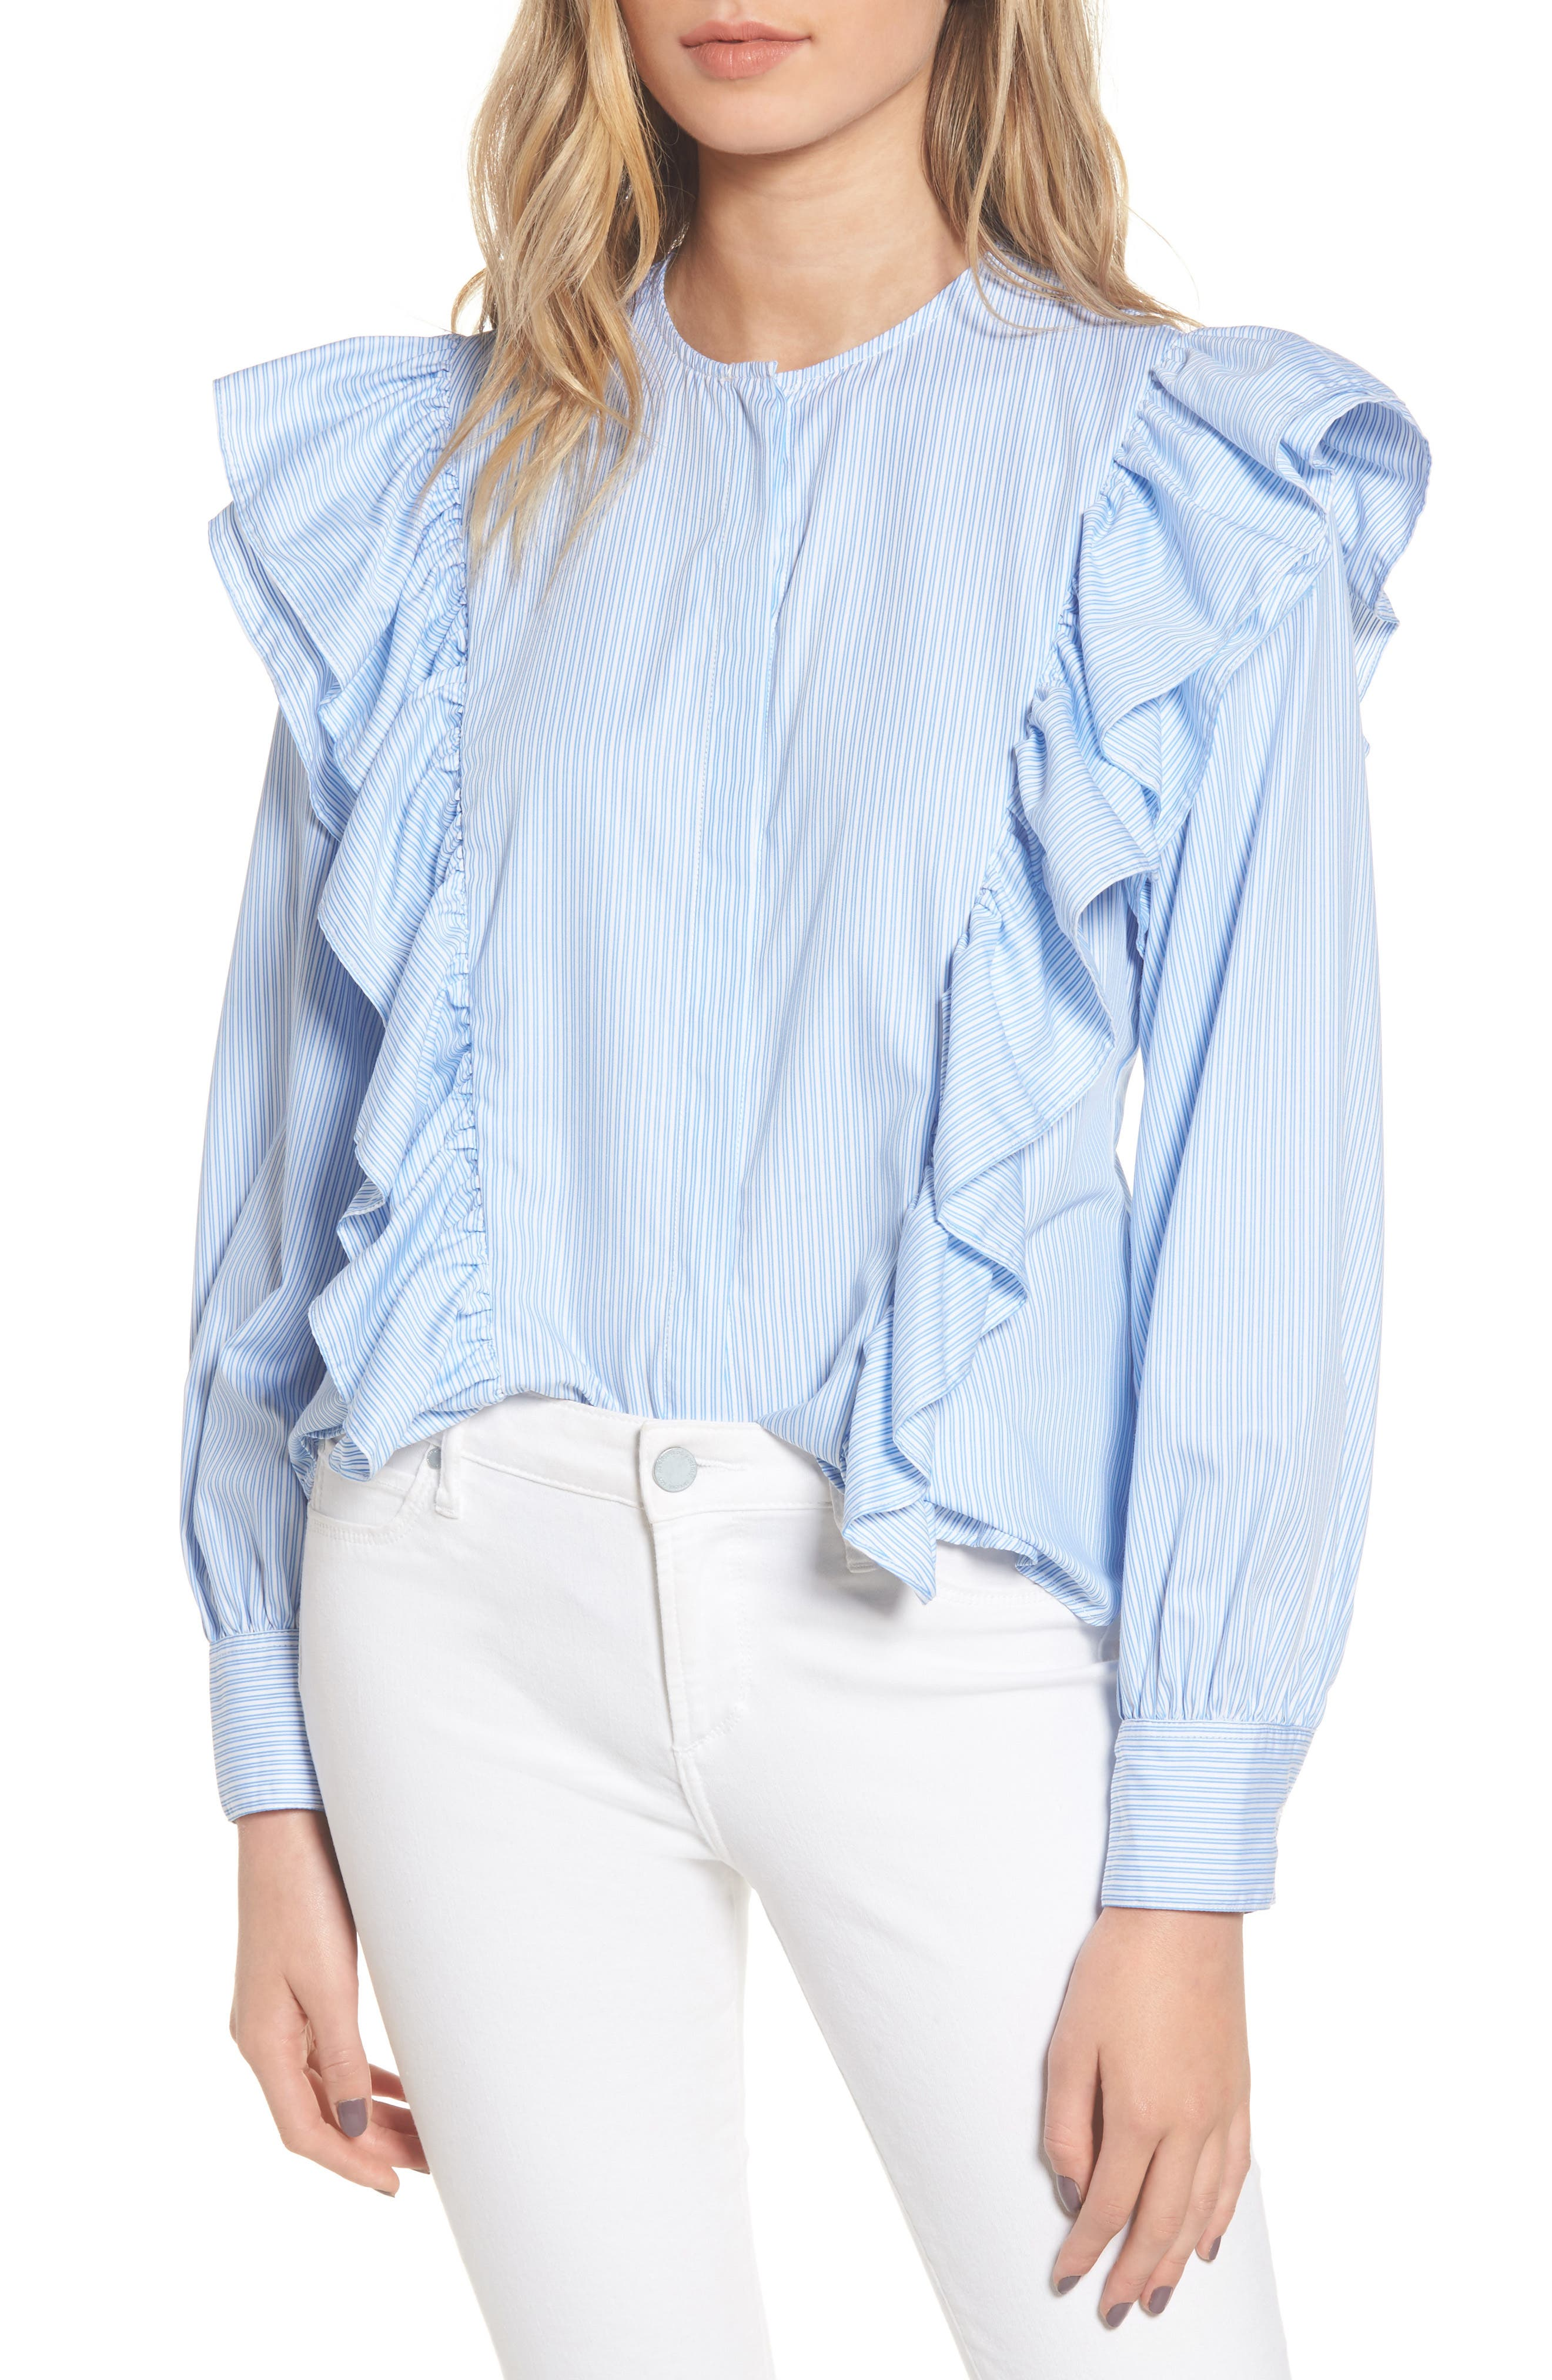 Girl Meets Boy Ruffle Top,                         Main,                         color, Striped Blue